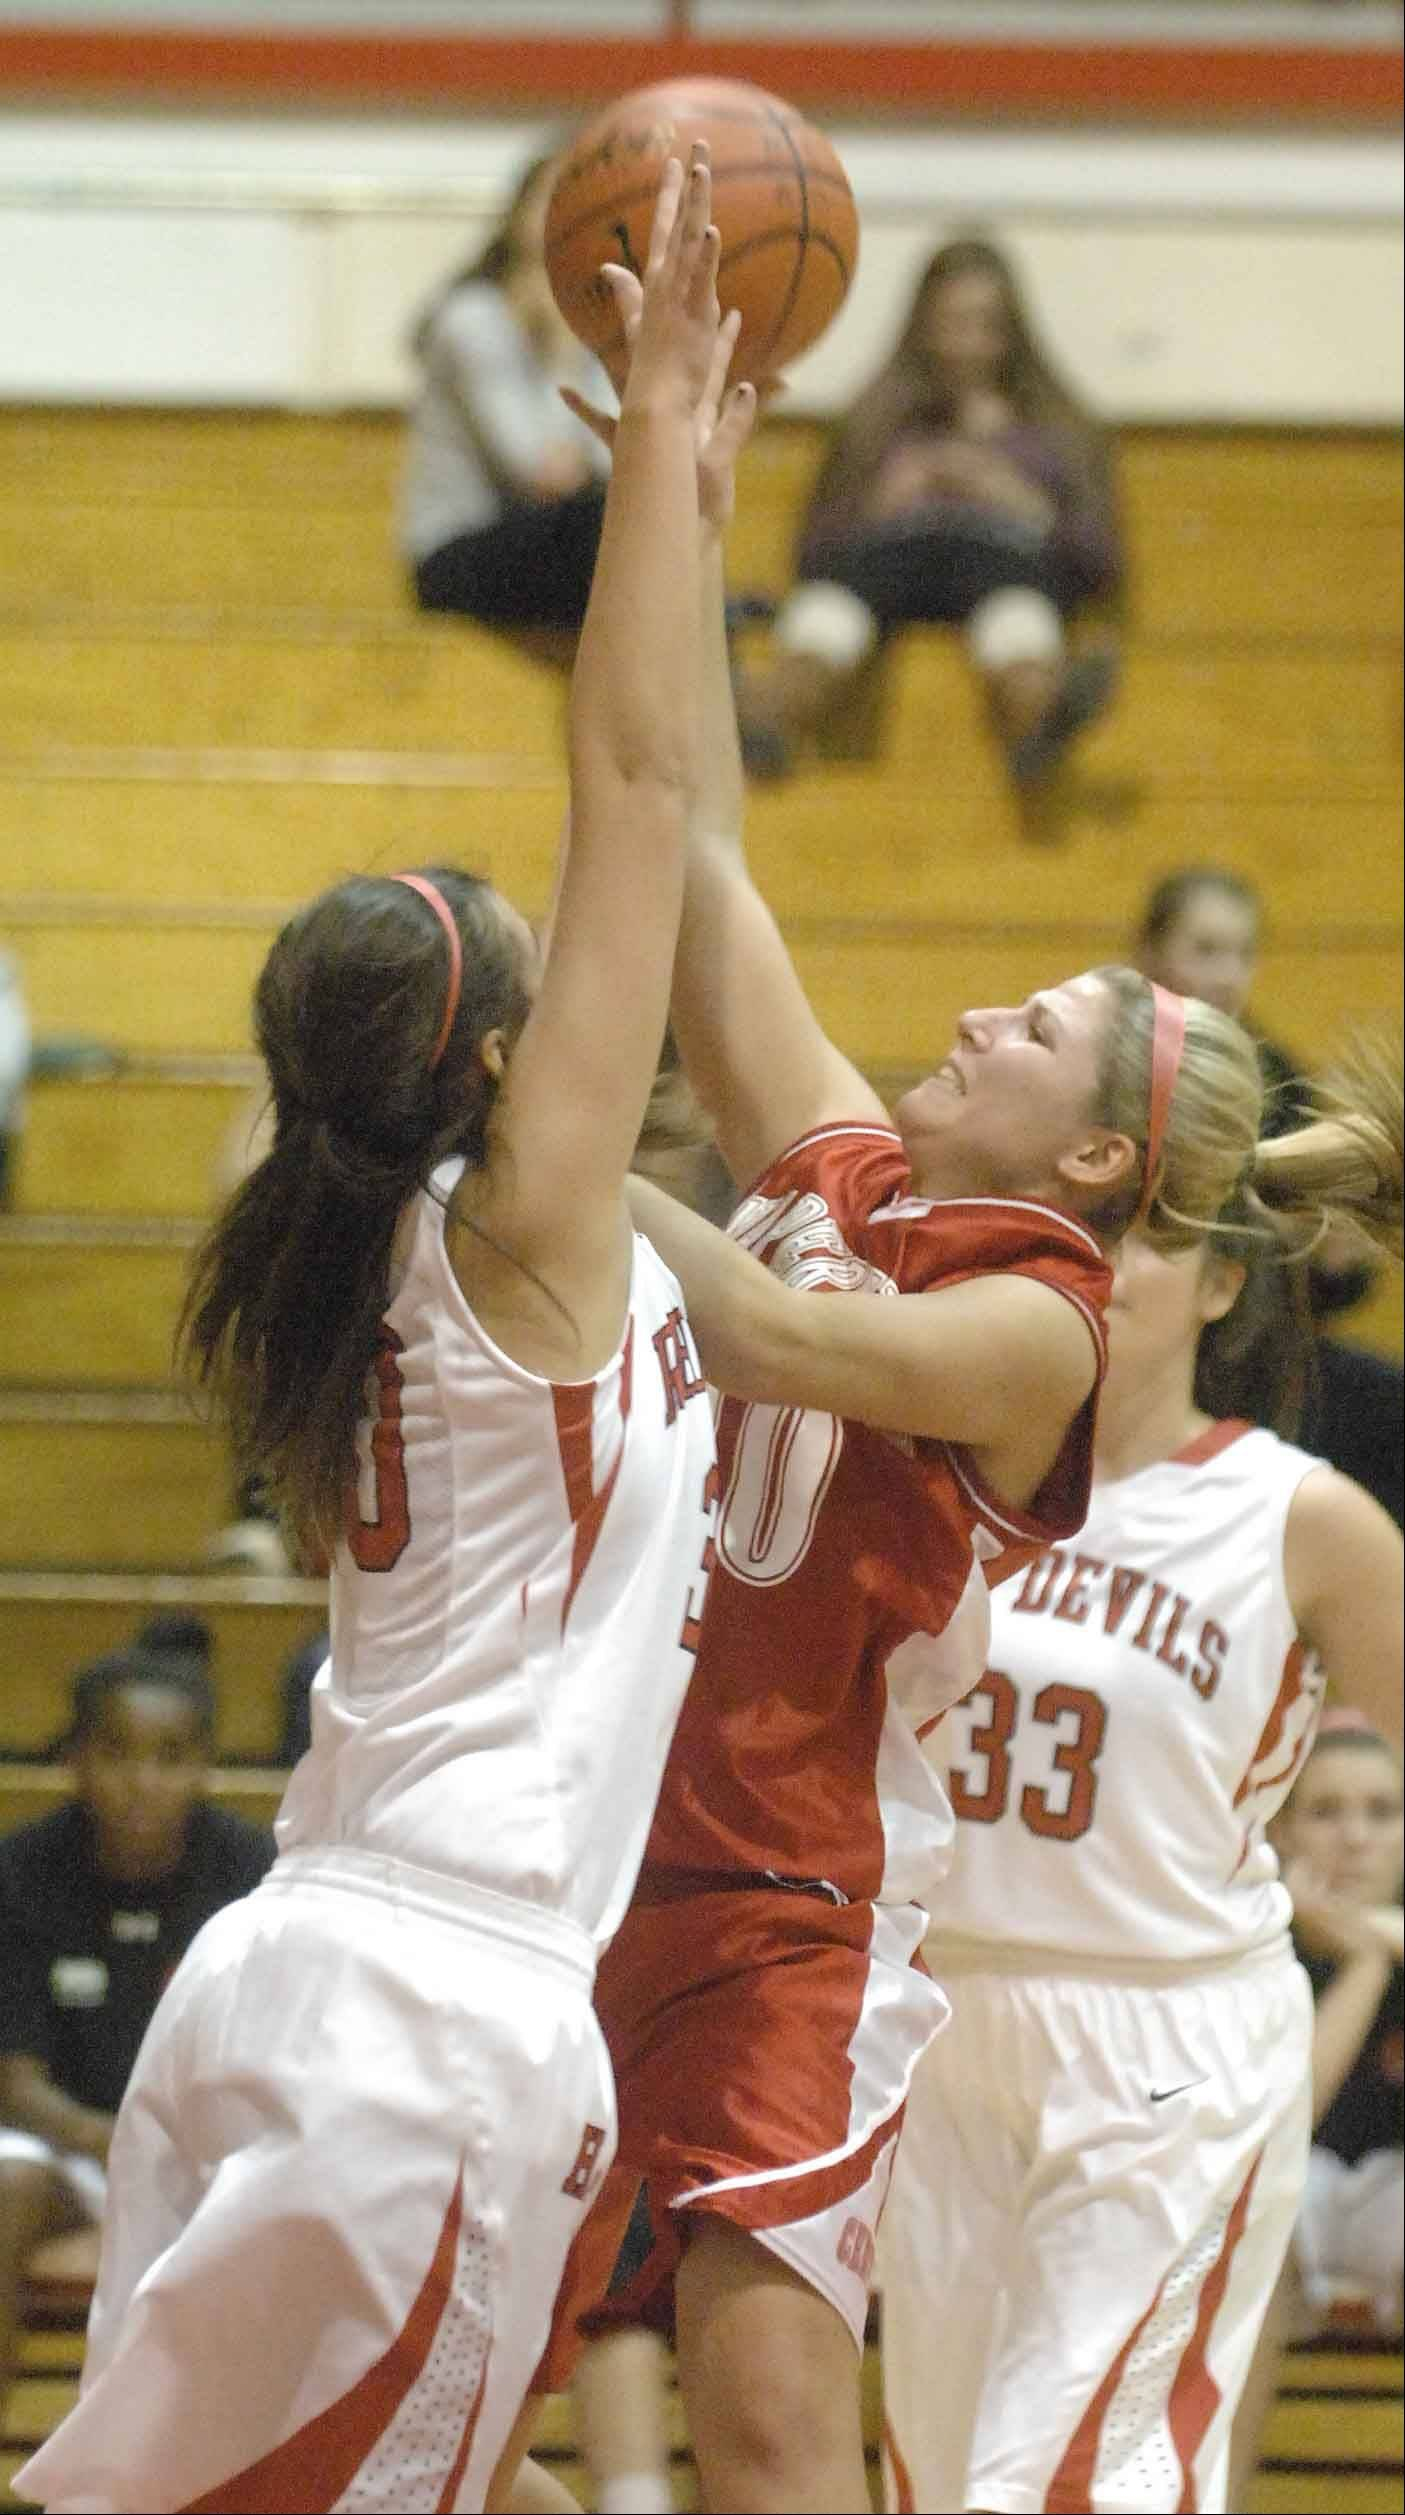 Hinsdale Central's Jenna Broz, left, blocks Naperville Central's Jill D'Amico during Tuesday's game action in Hinsdale.